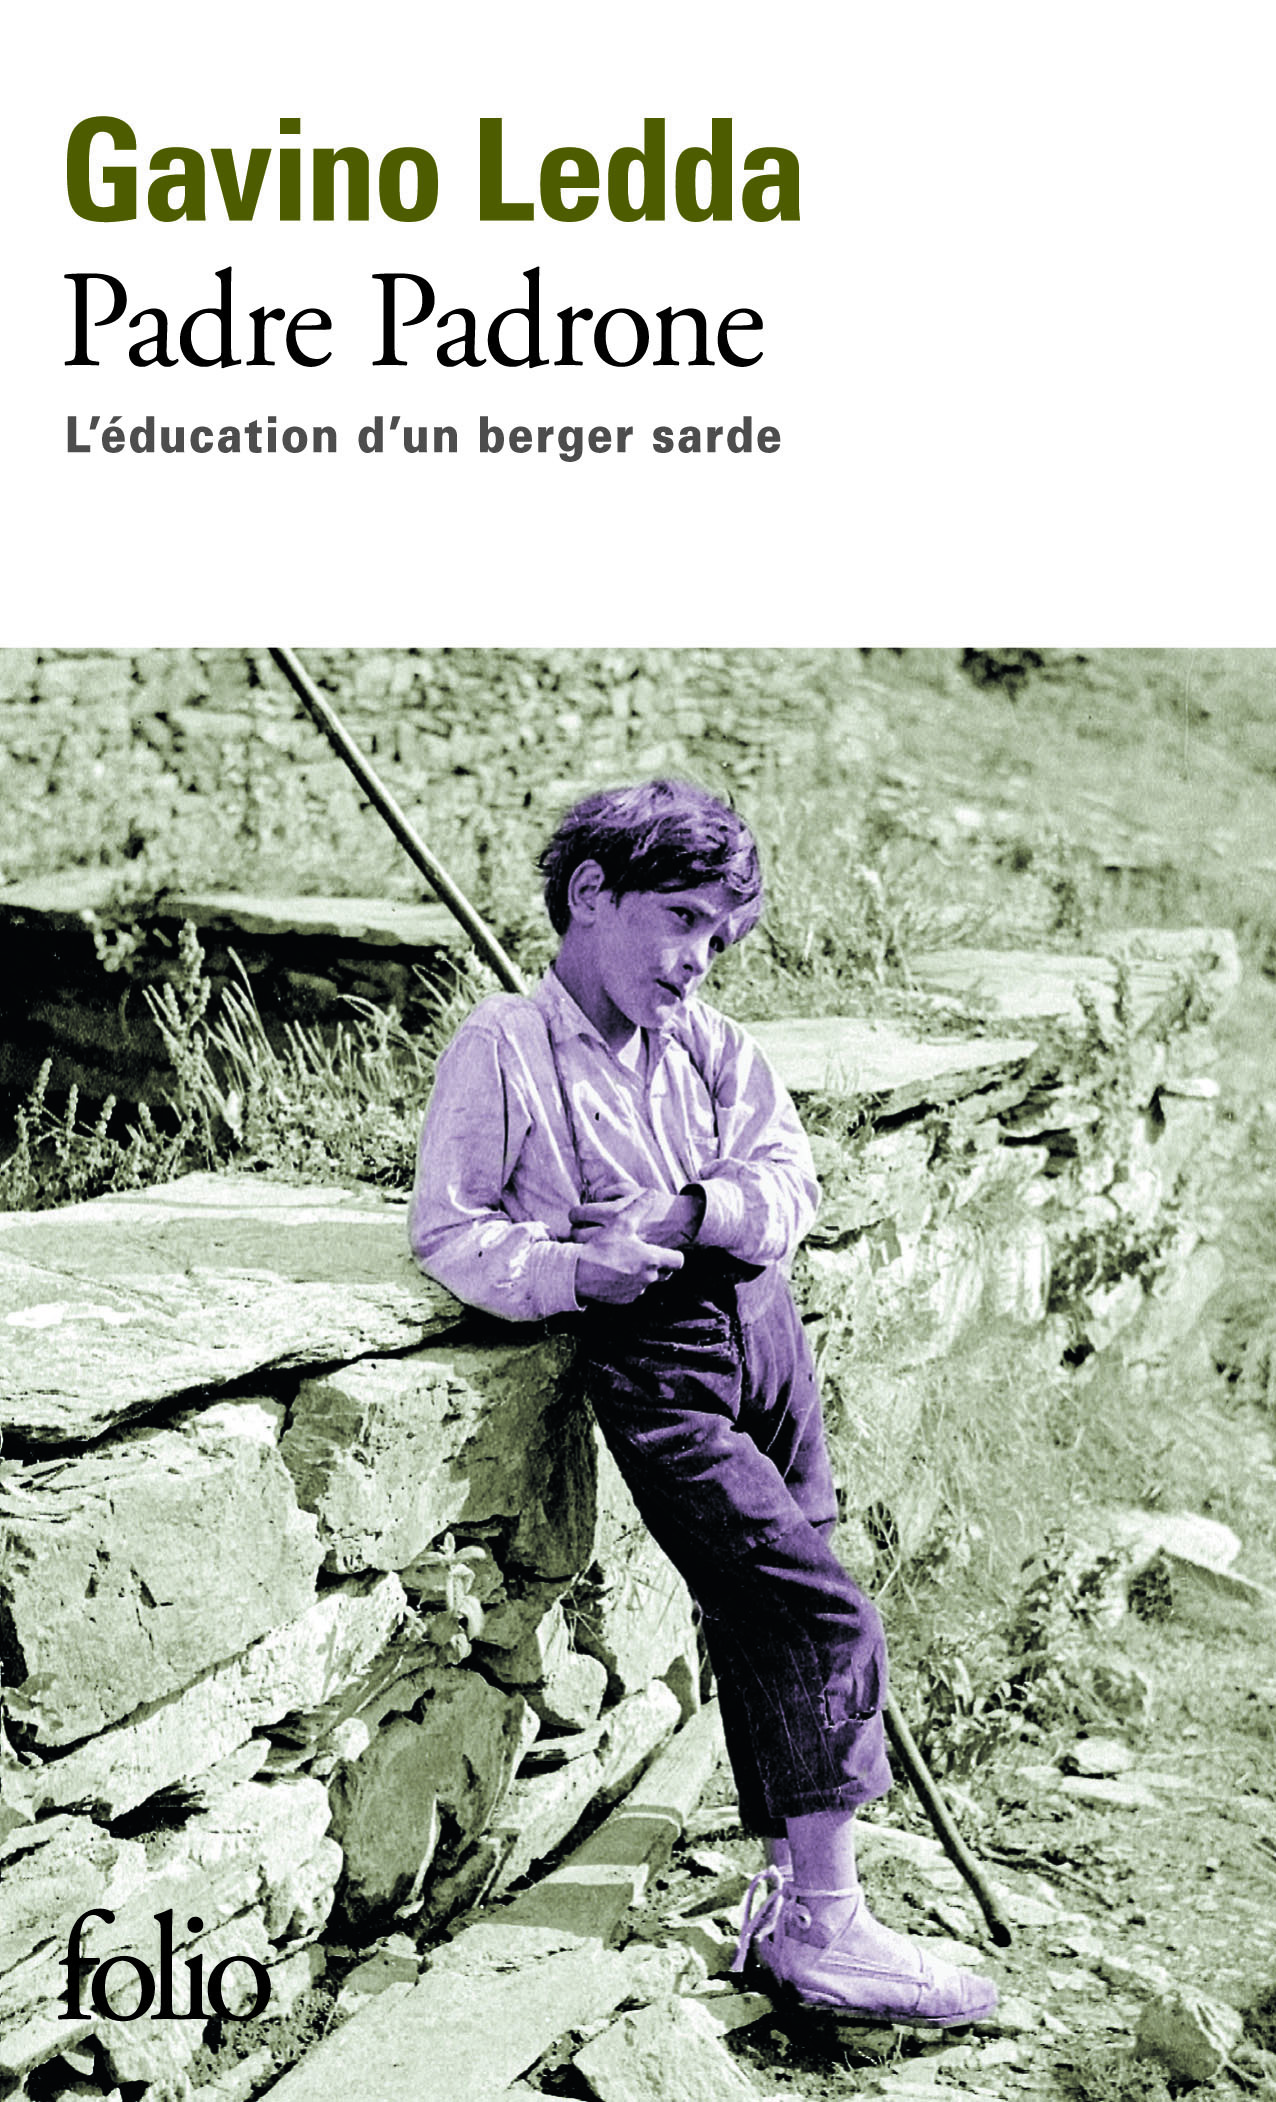 PADRE PADRONE L'EDUCATION D'UN BERGER SARDE